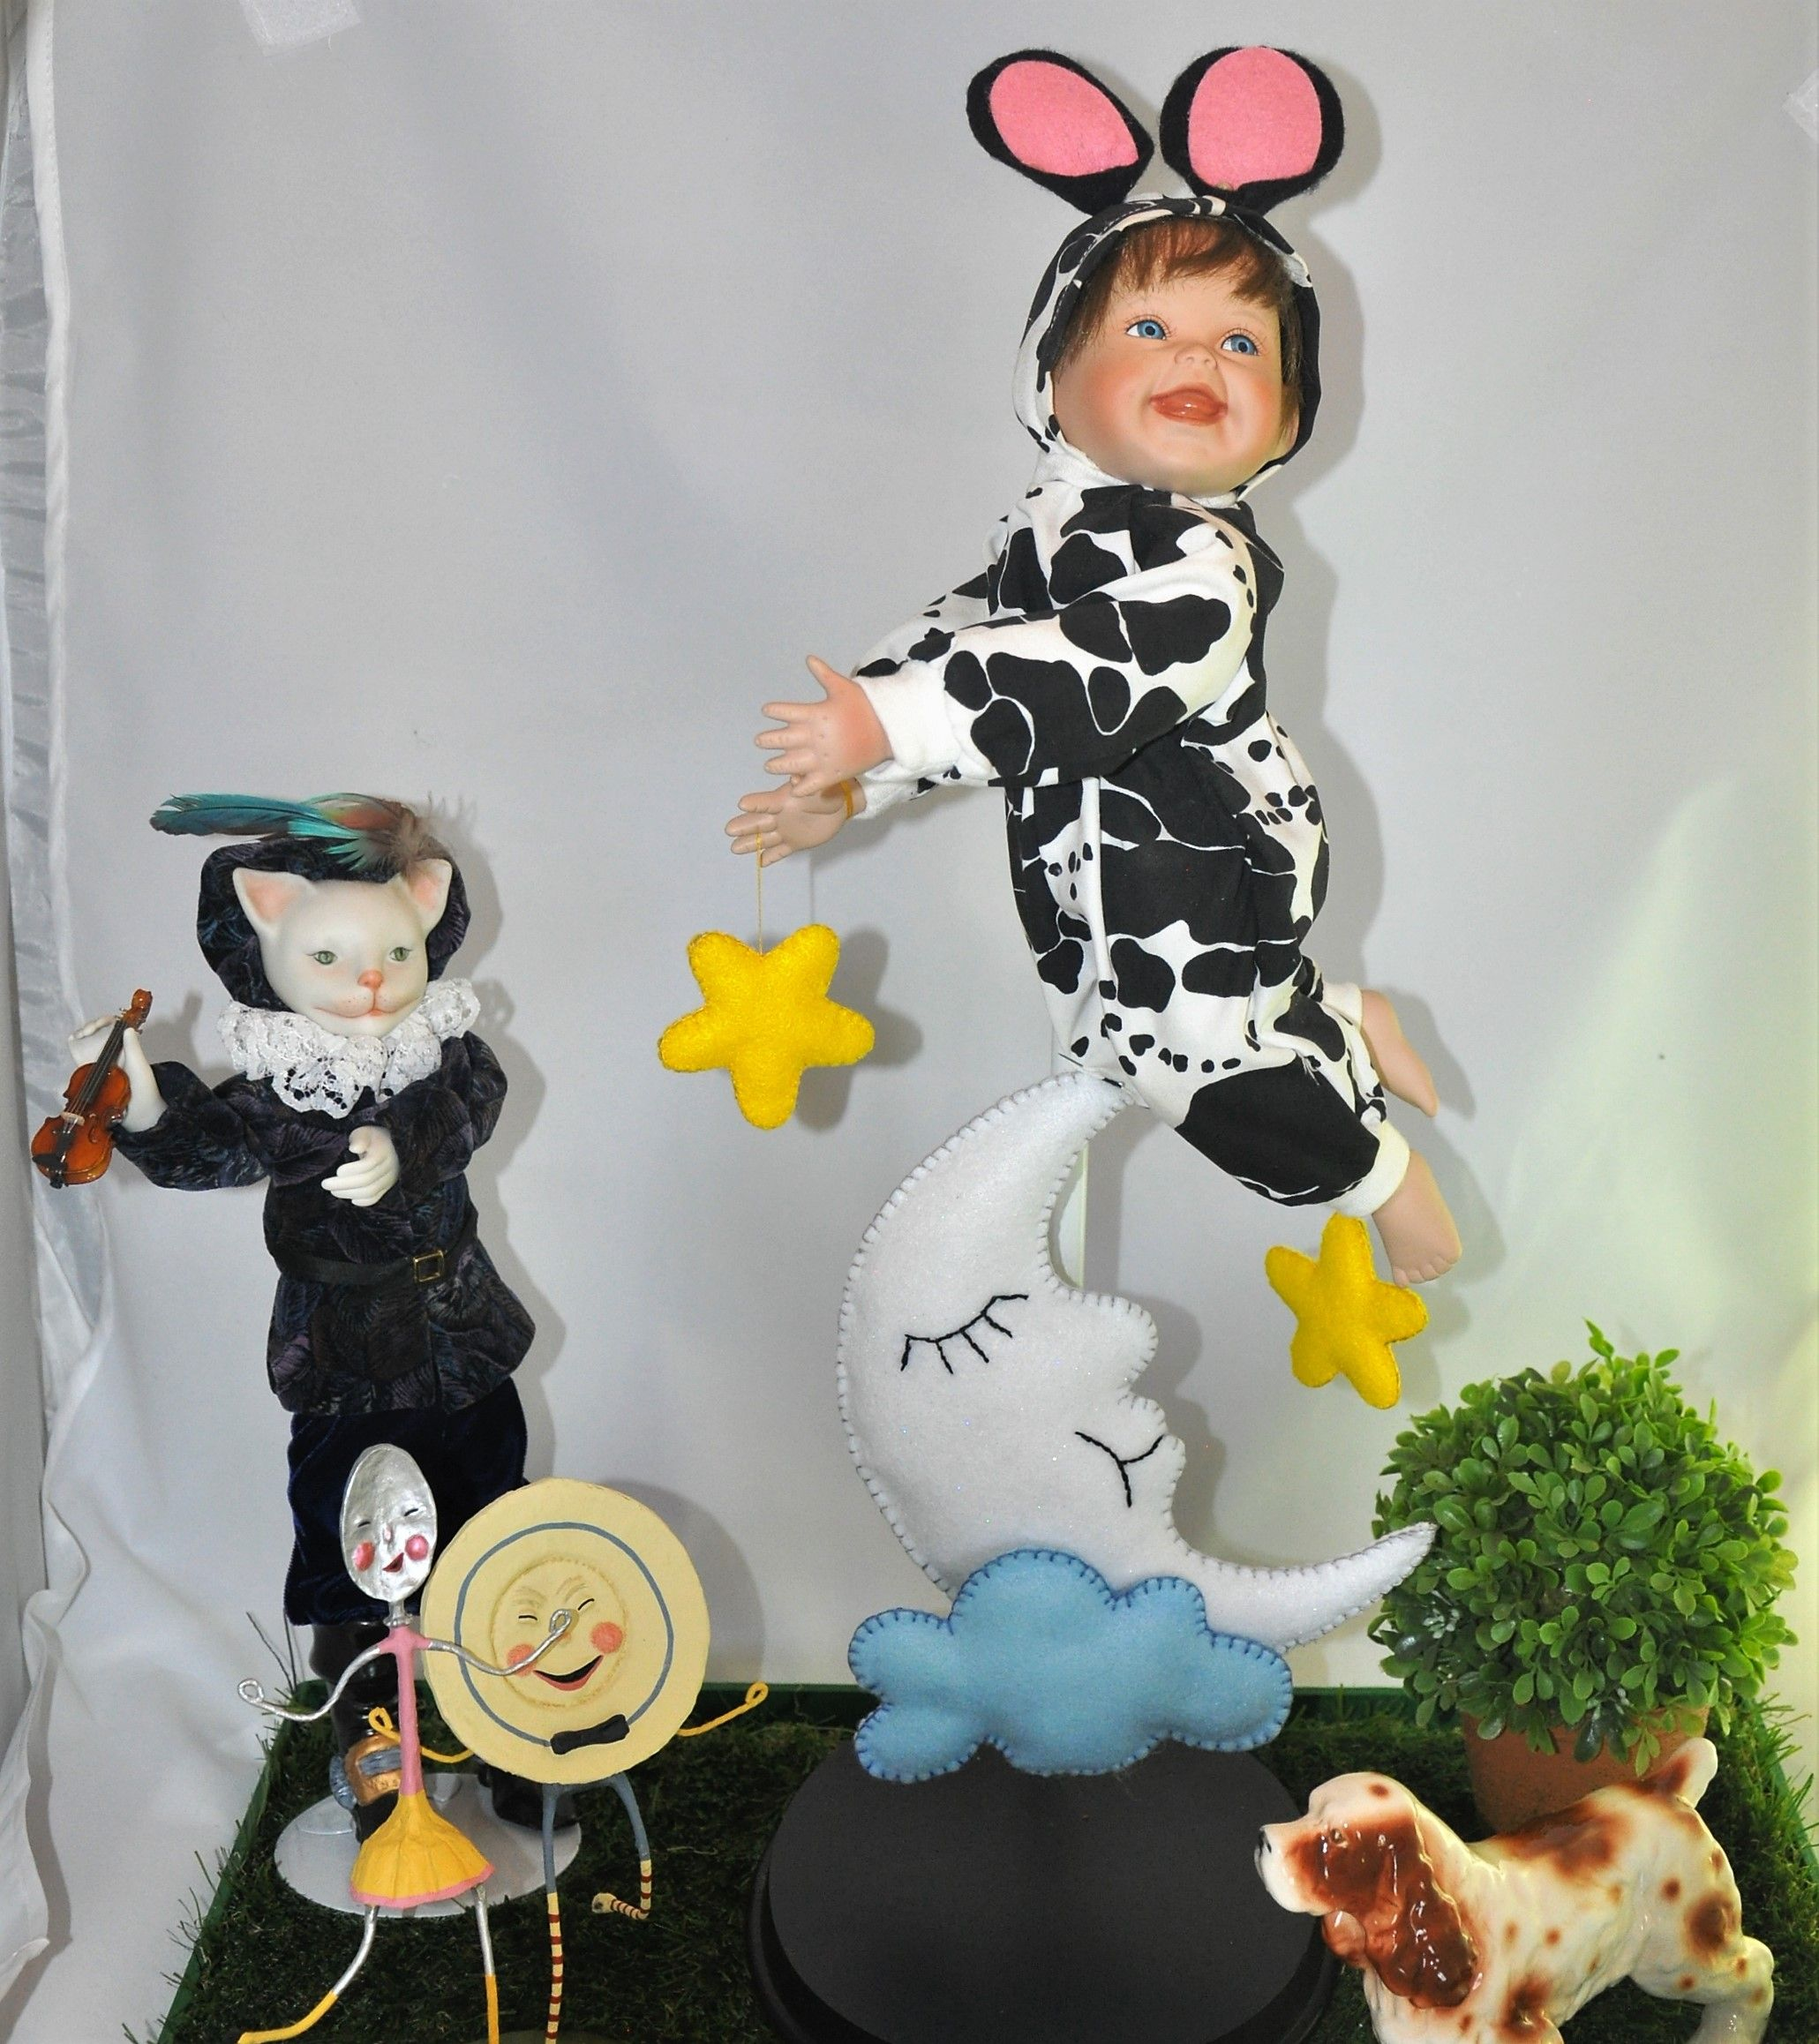 Hey Diddle Diddle the Cat and the Fiddle. The Cow jumped